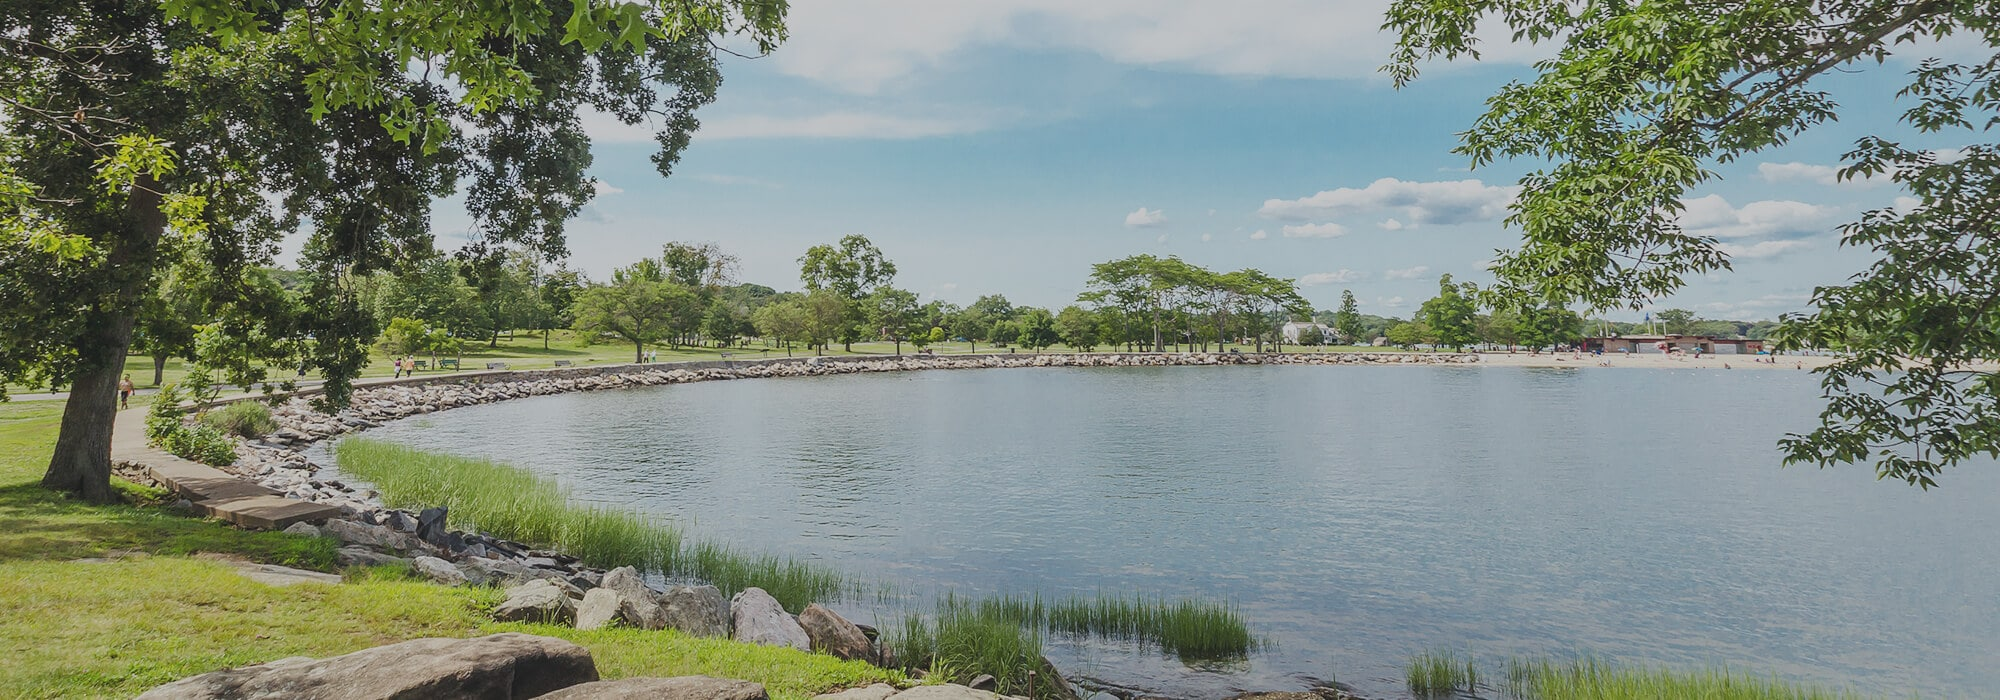 View overlooking lake circled by grass, trees, and rocks